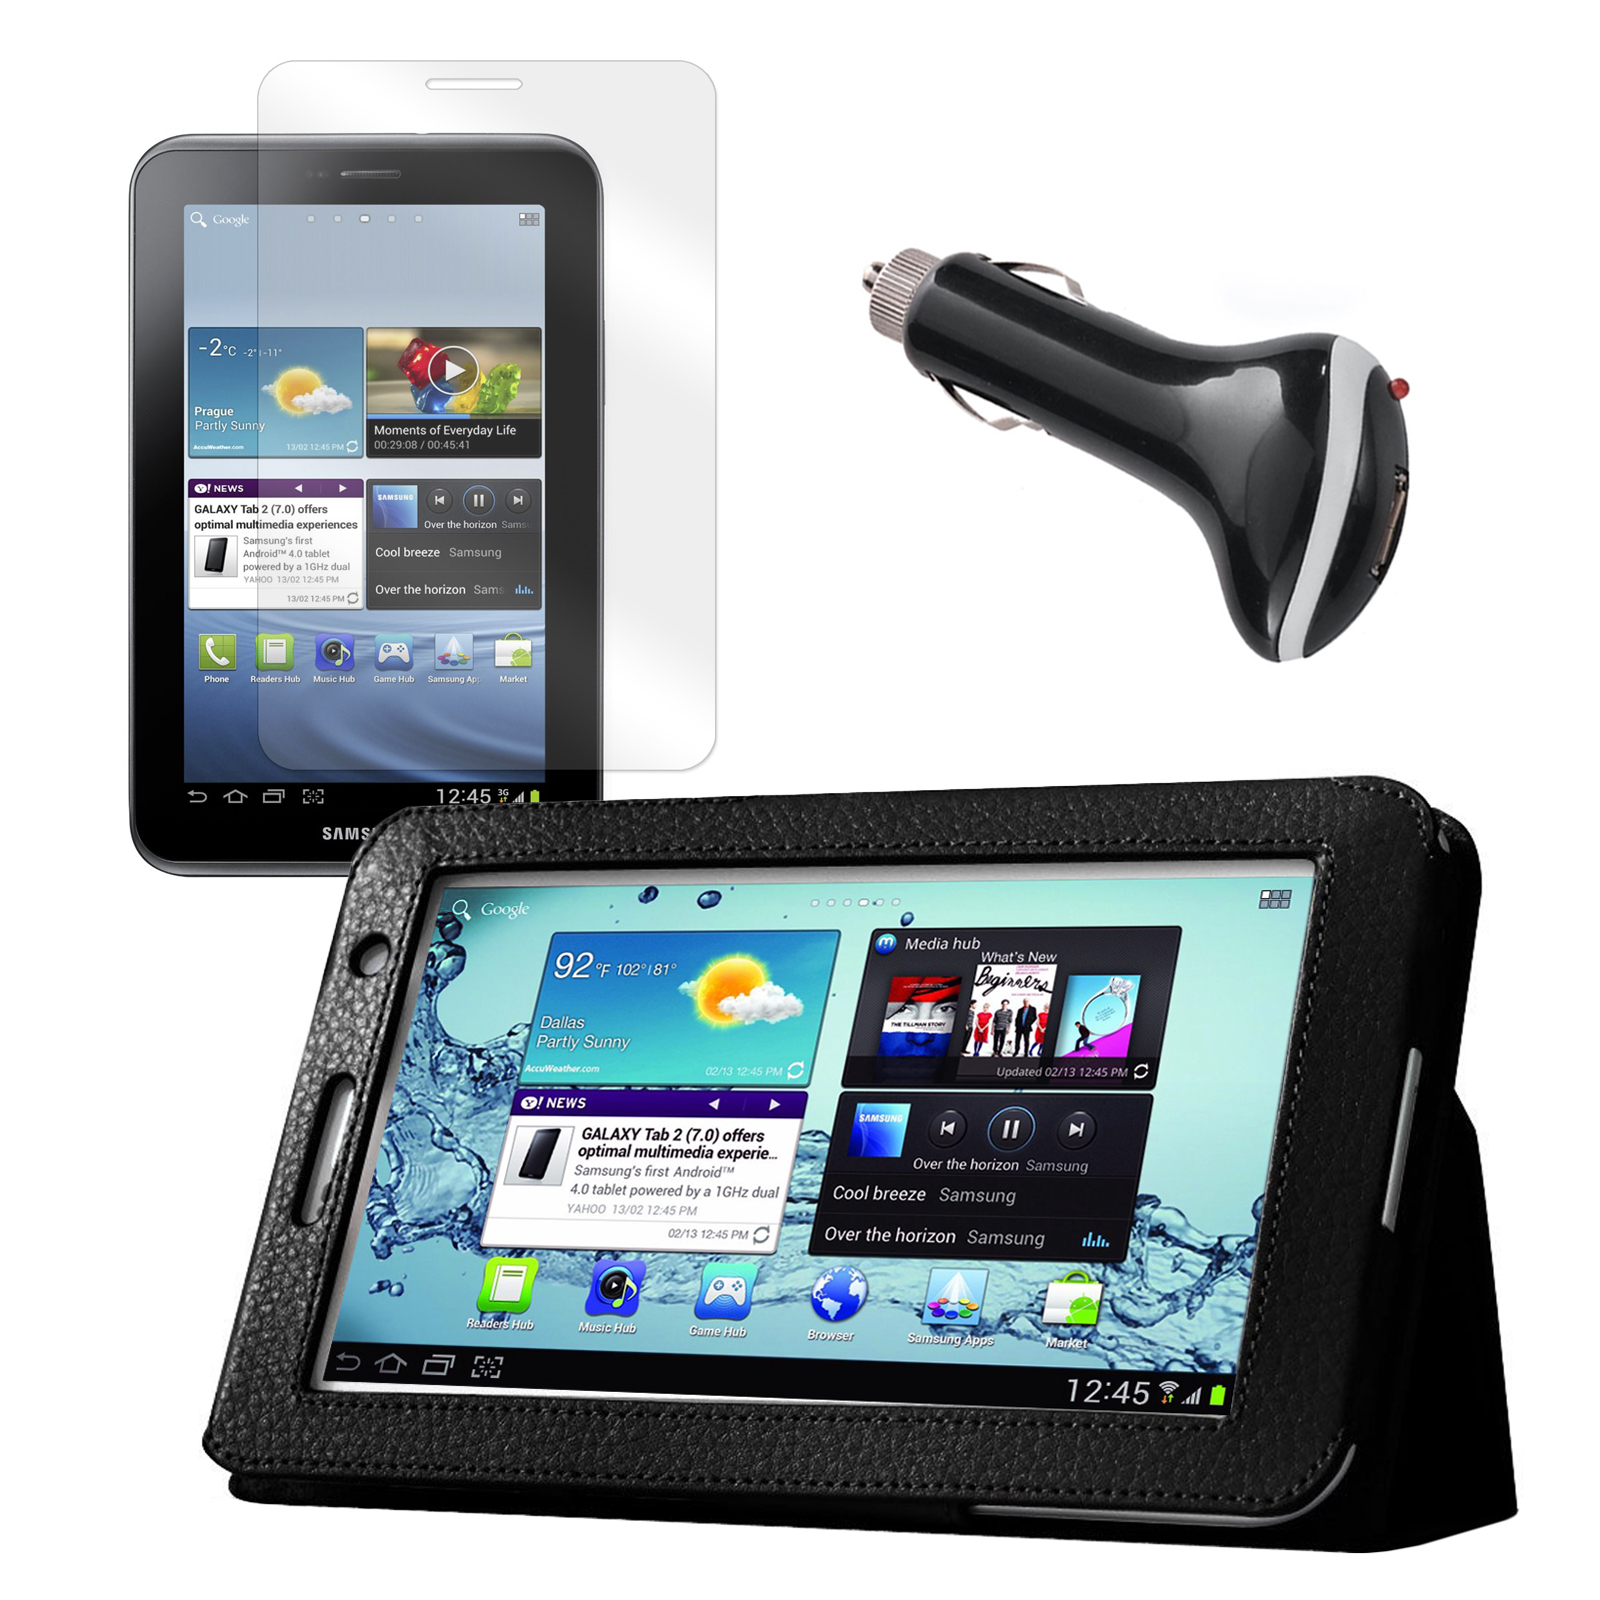 "Black Folio Case with Screen Protector and Car Charger for Samsung Galaxy Tab 2 7"" Tablet"